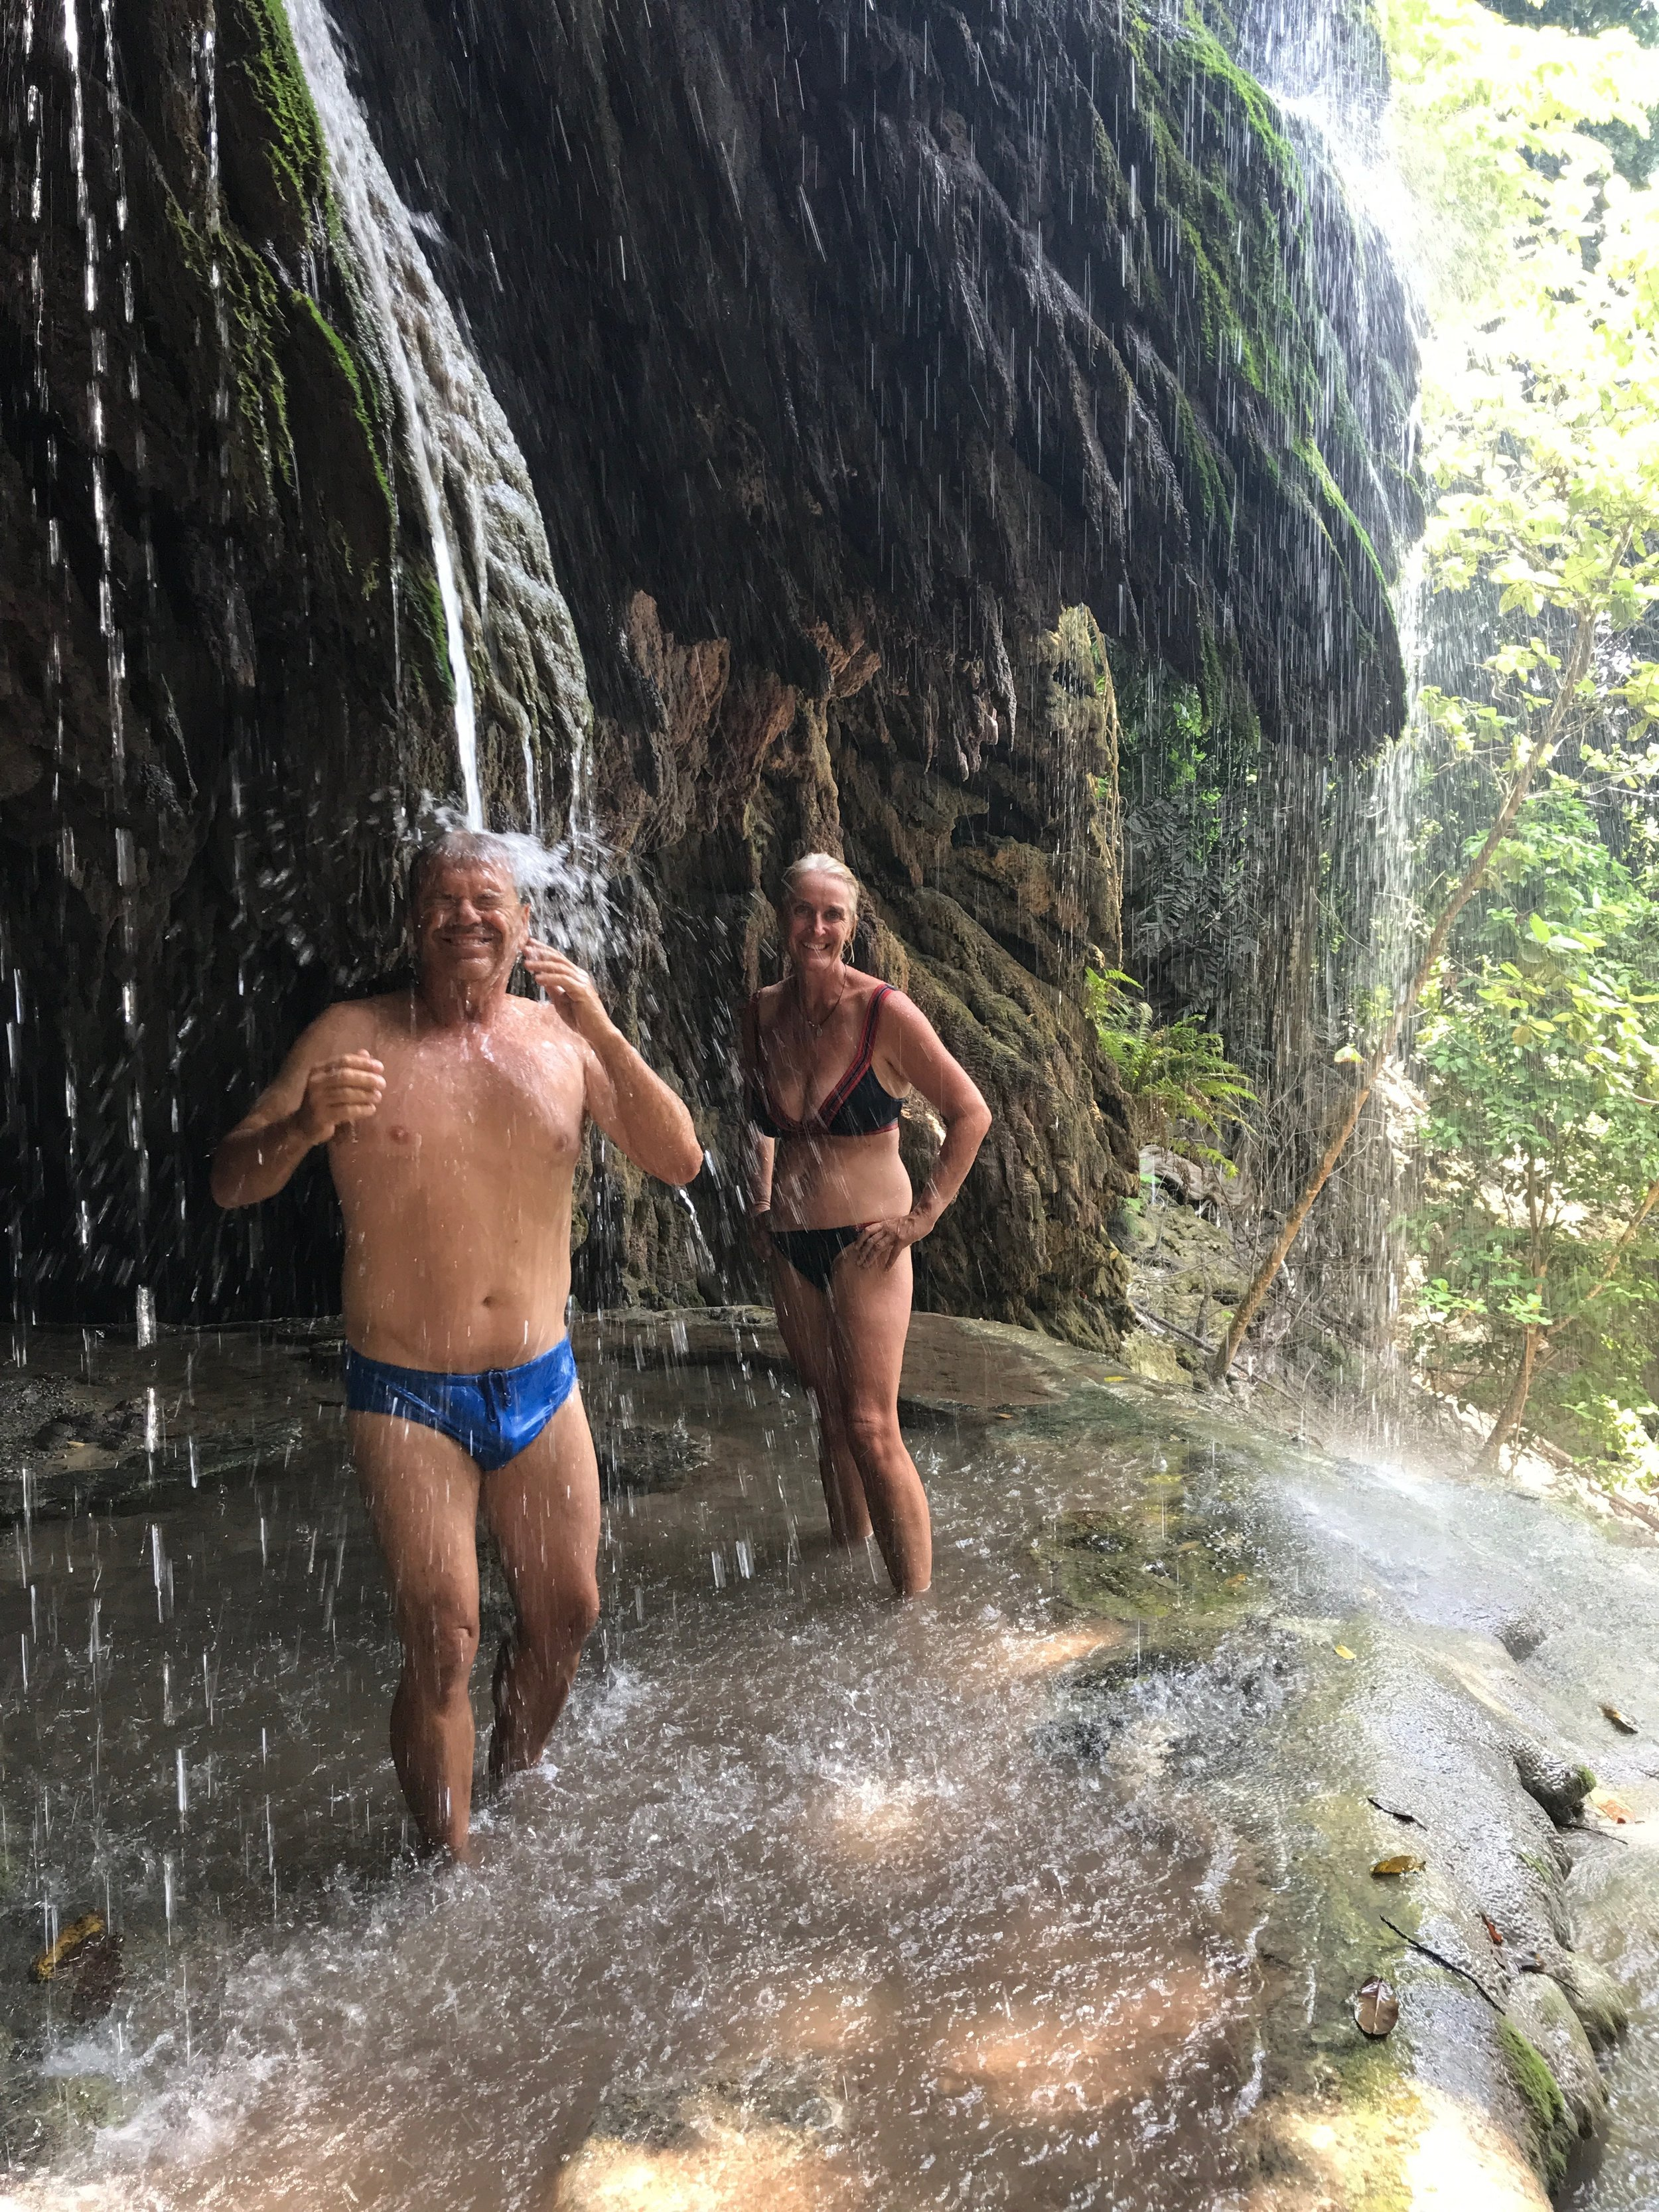 Matt and Nicky cooling off in the Hughs Dale Waterfall